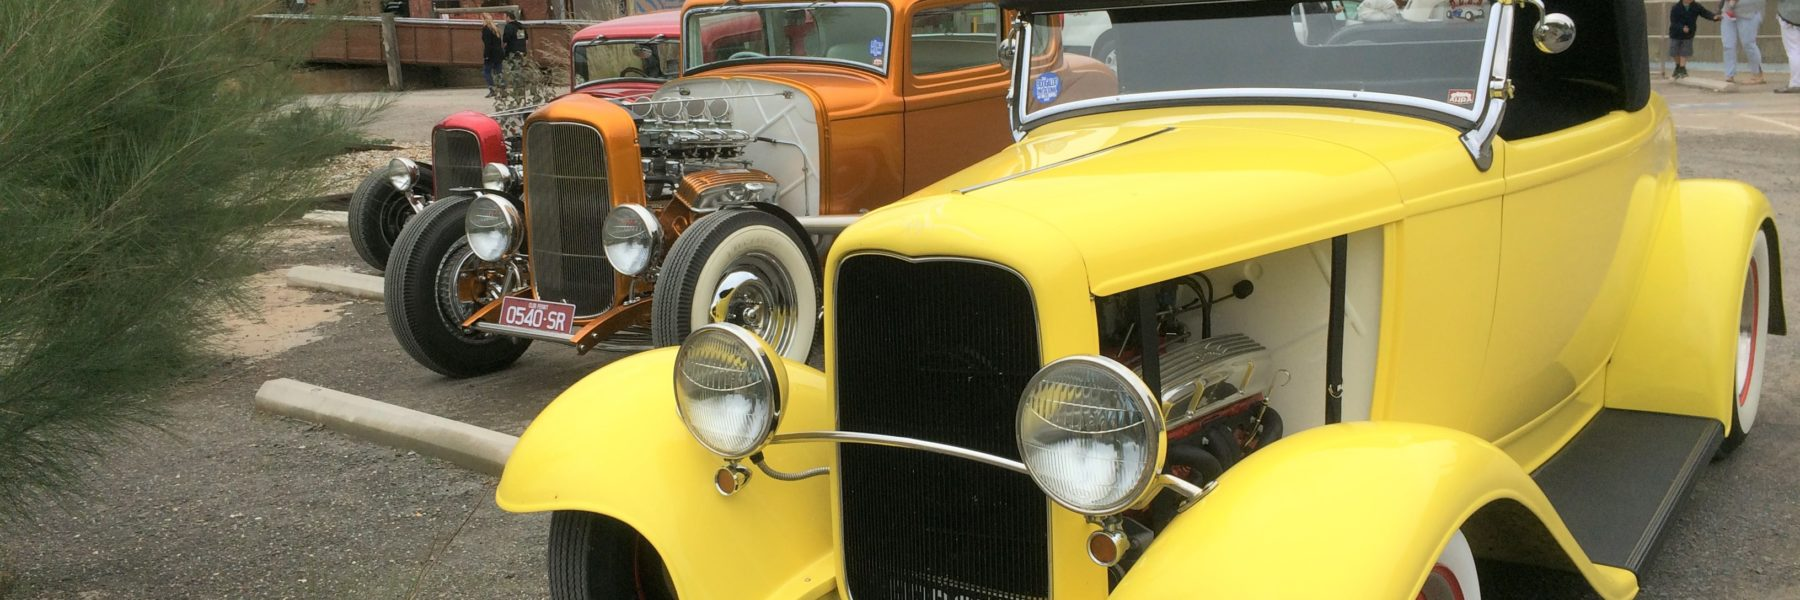 Hot rods at The Mill Castlemaine